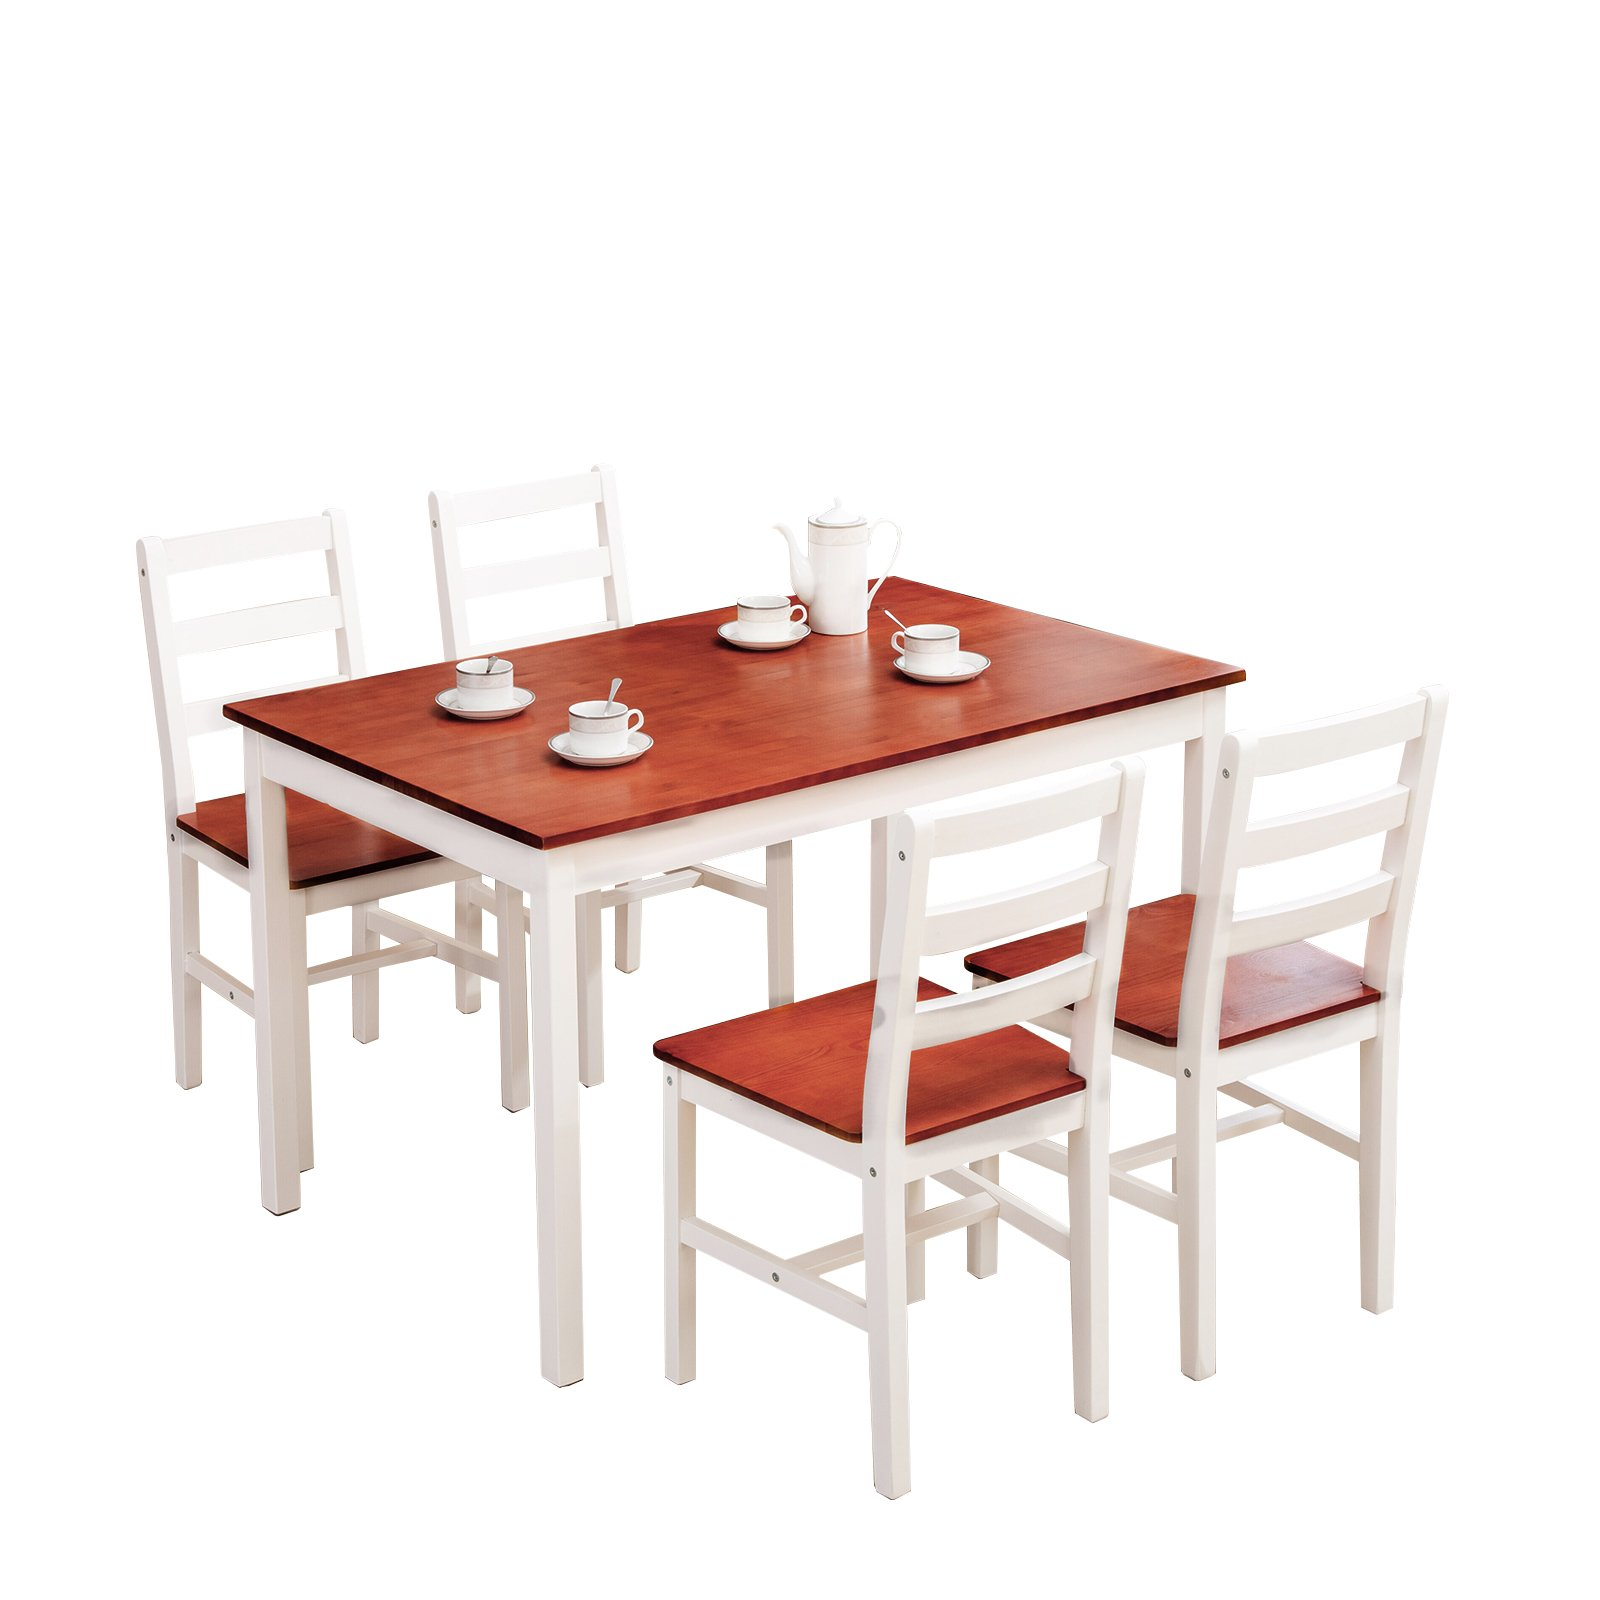 mecor 5 Piece Wood Dining Table Set, Kitchen Table w/ 4 Chairs for Home Kitchen Breakfast Furniture by mecor